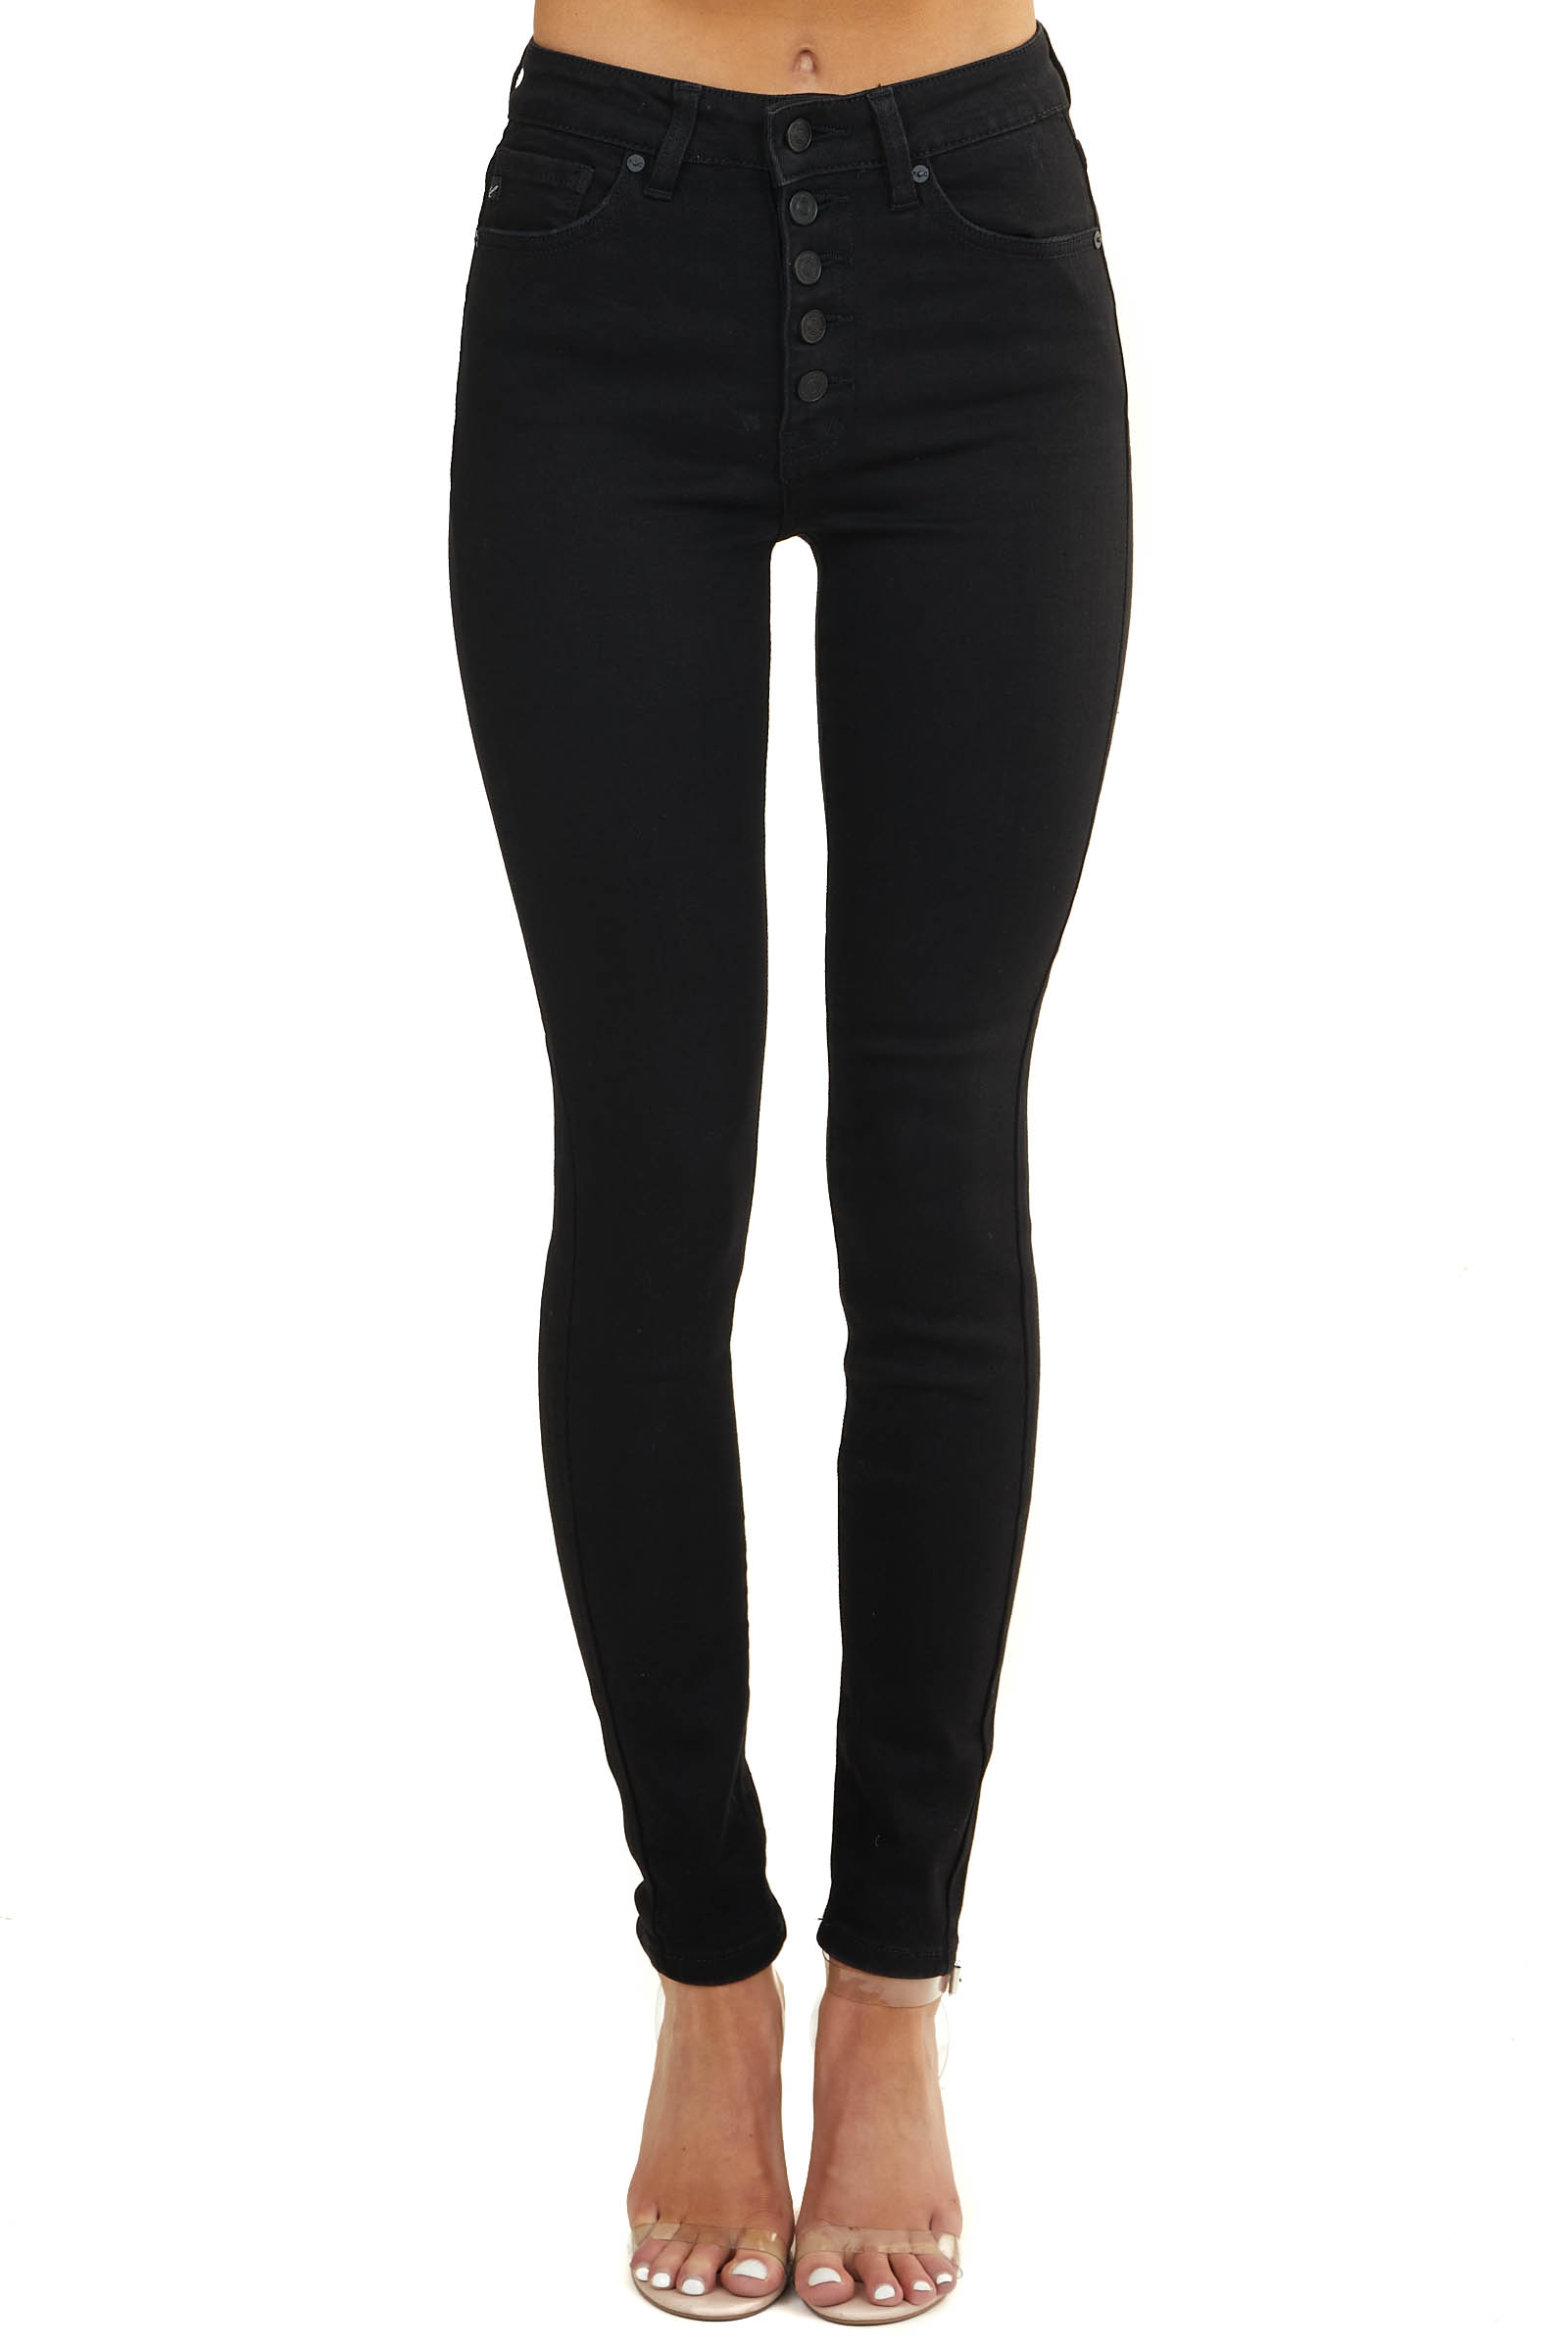 Black High Waisted Skinny Jeans with Multi Button Closure